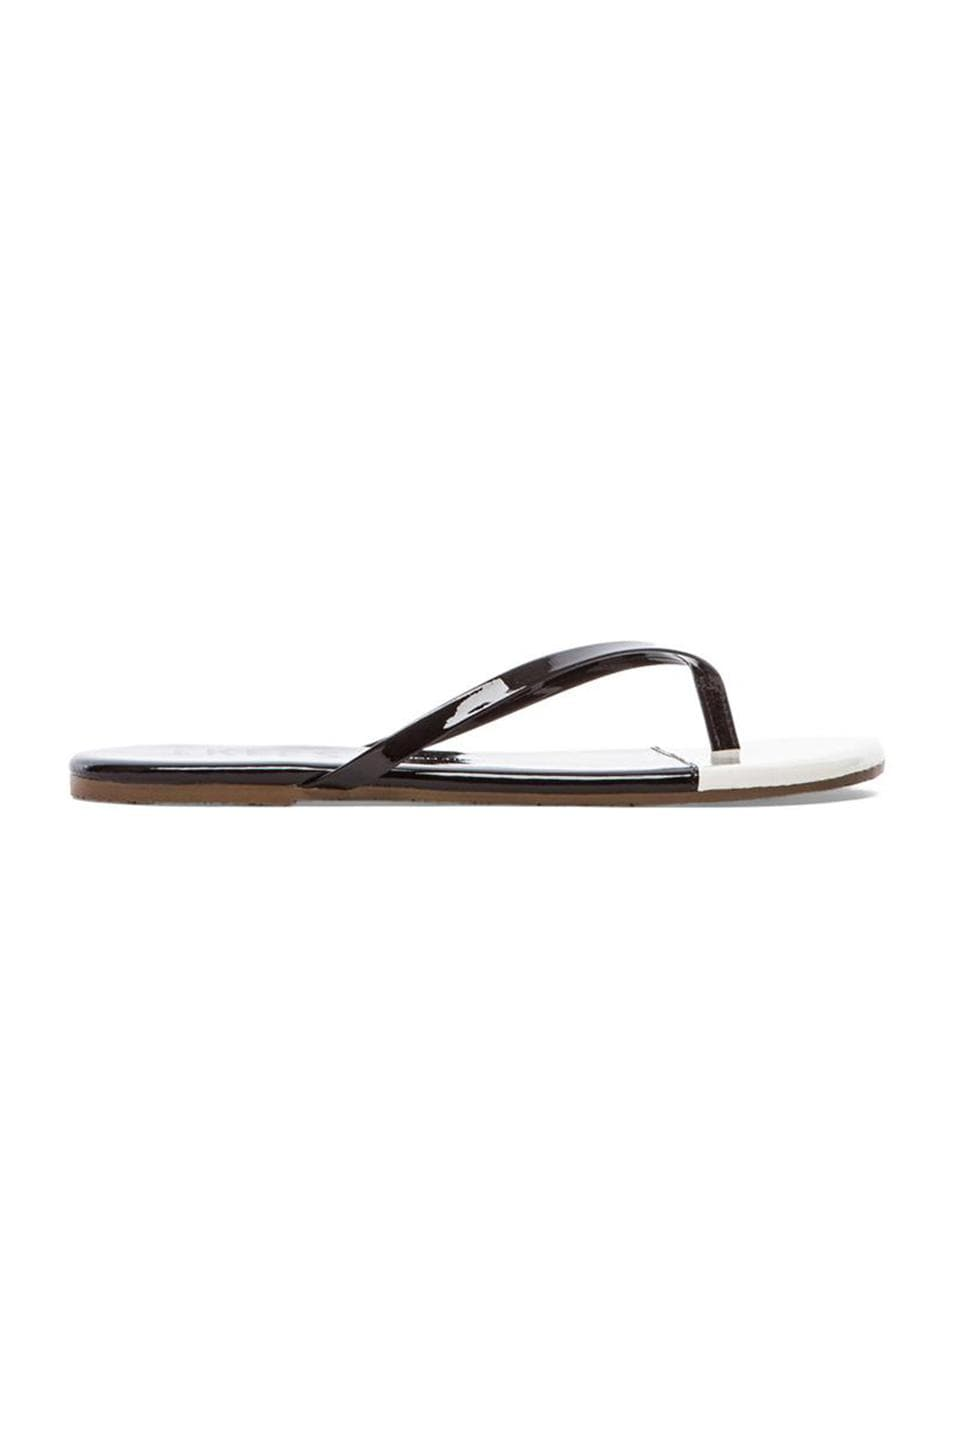 TKEES Sandal in Black Tie